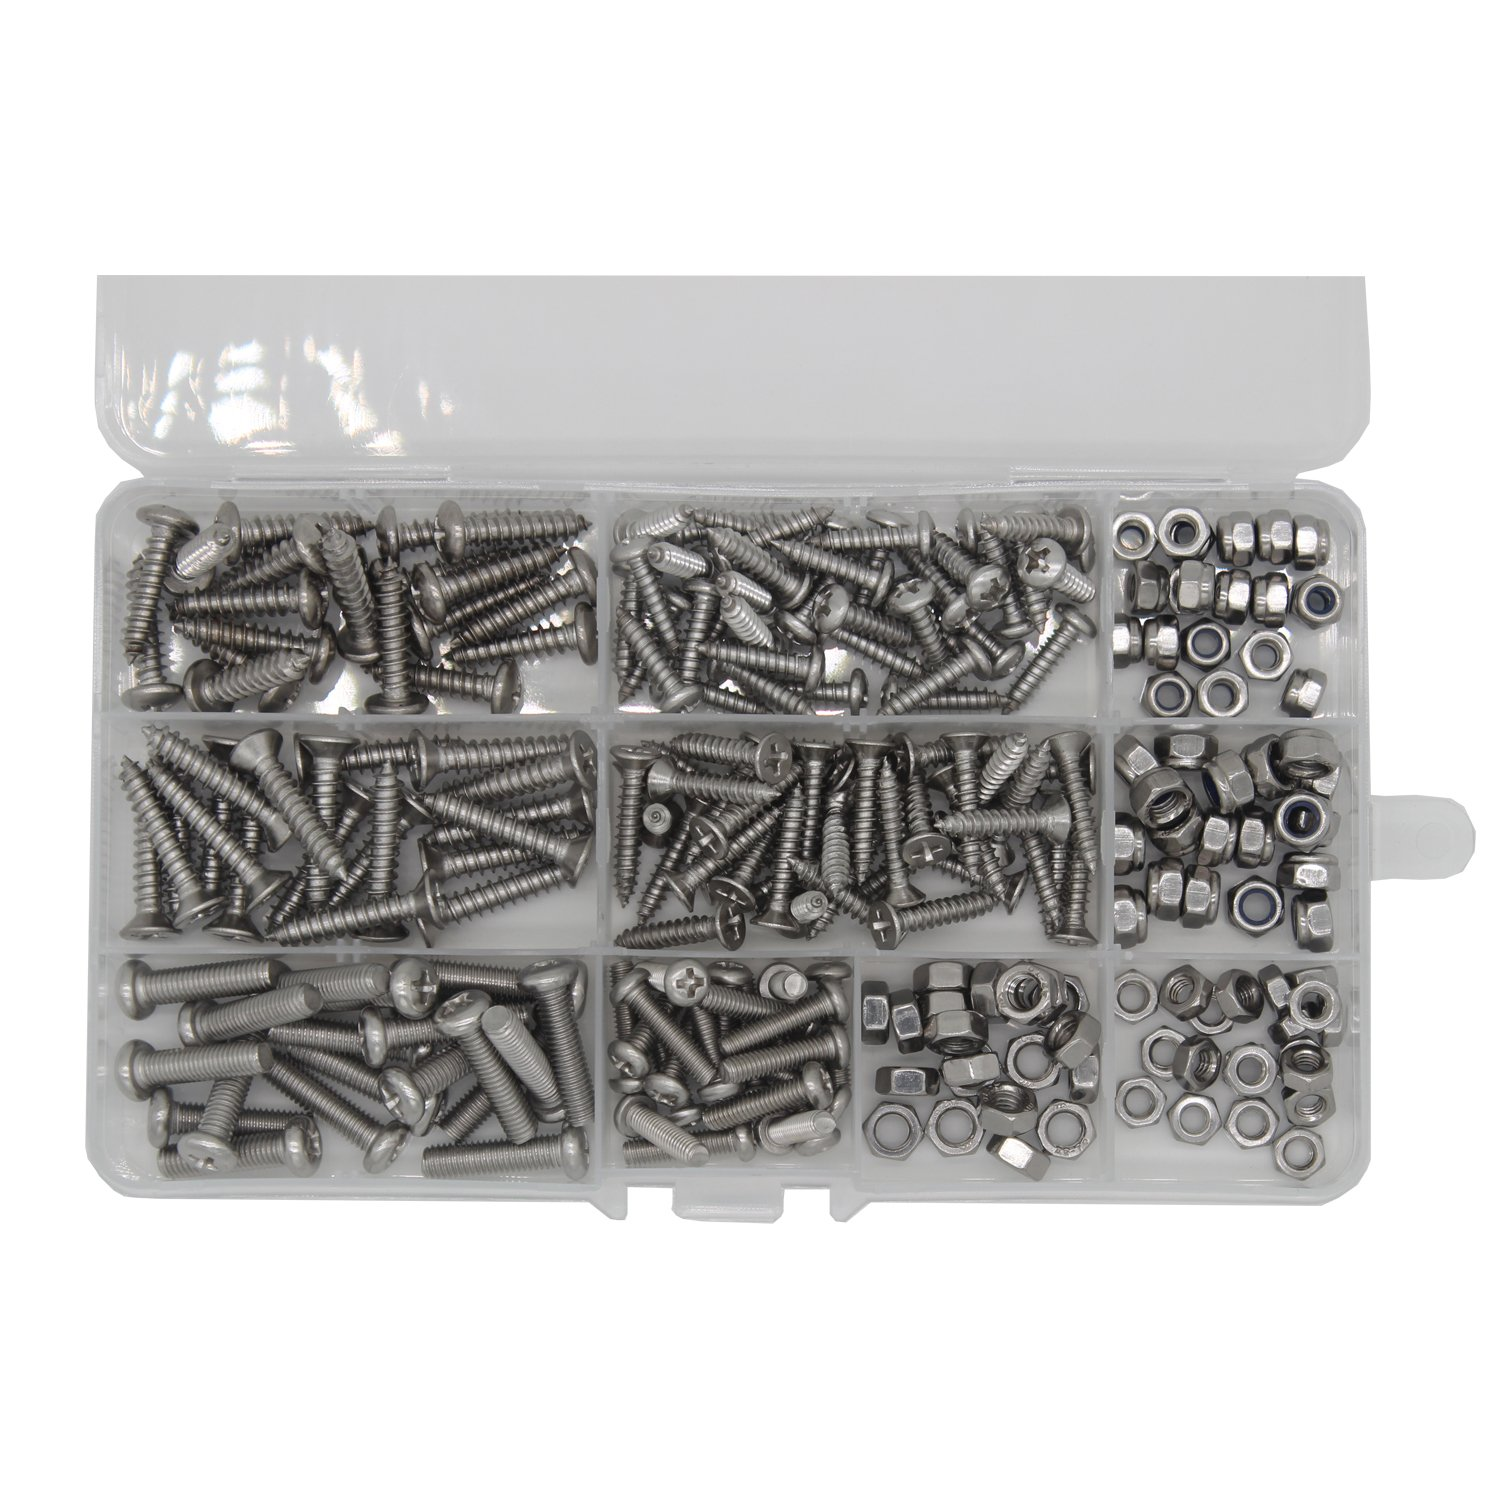 HUAYY 304 Stainless Steel Home use,bolts Hex Lock Nuts and Washer or flat mat Assortment Kit,Phillips Flat/Pan,Machine/Tapping Screws